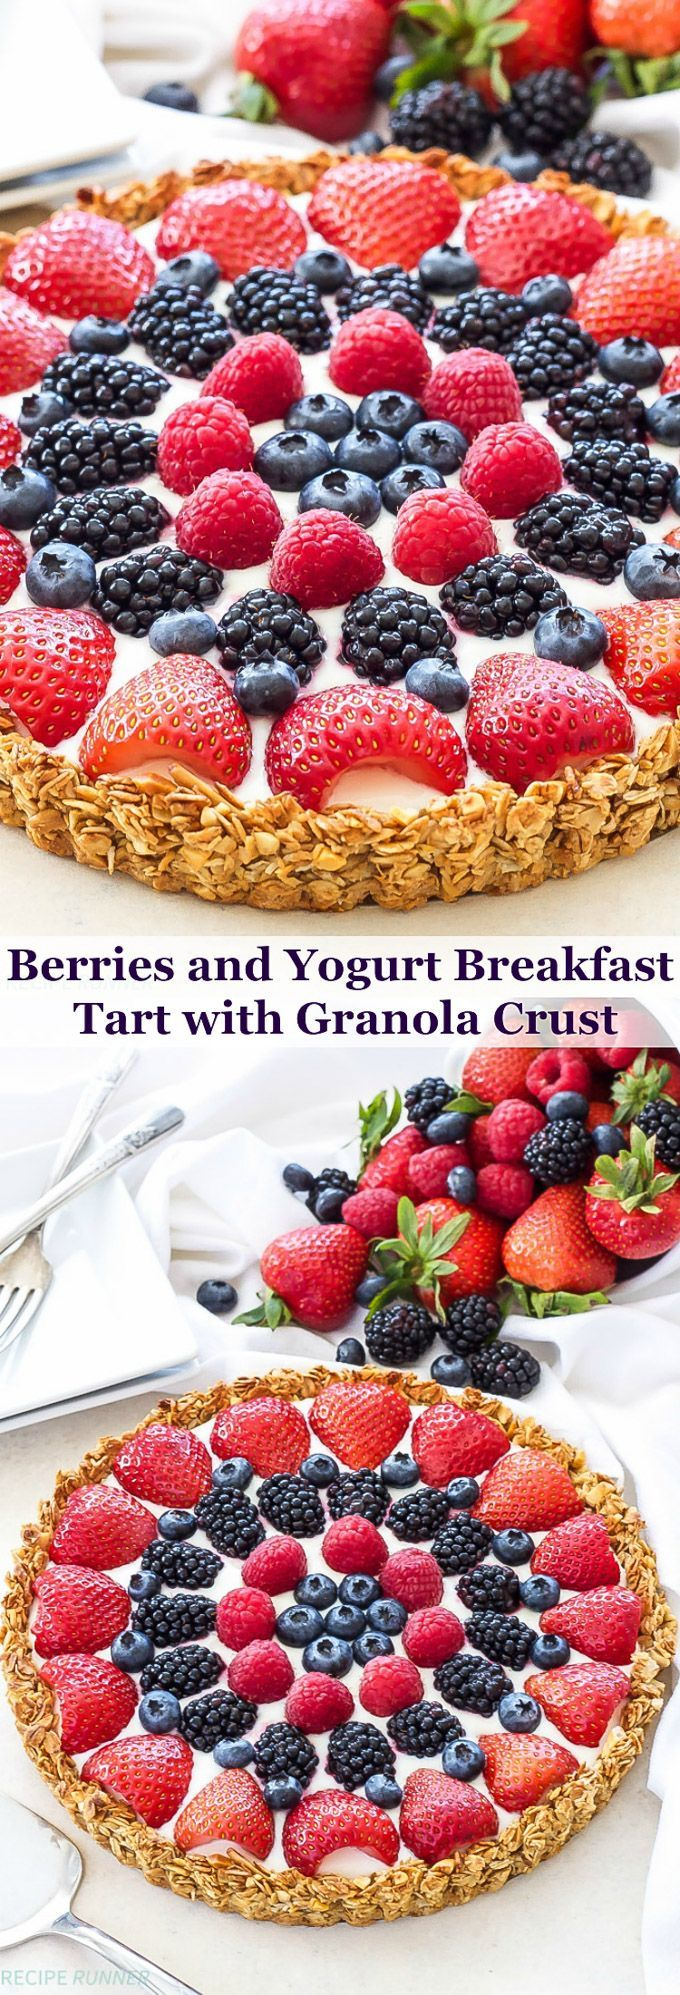 Berries and Yogurt Breakfast Tart with Granola Crust | This Berries and Yogurt Breakfast Tart will have everyone running to the breakfast table! Not only is it a show-stopper, but it's made with all healthy ingredients, gluten-free and tastes amazing!